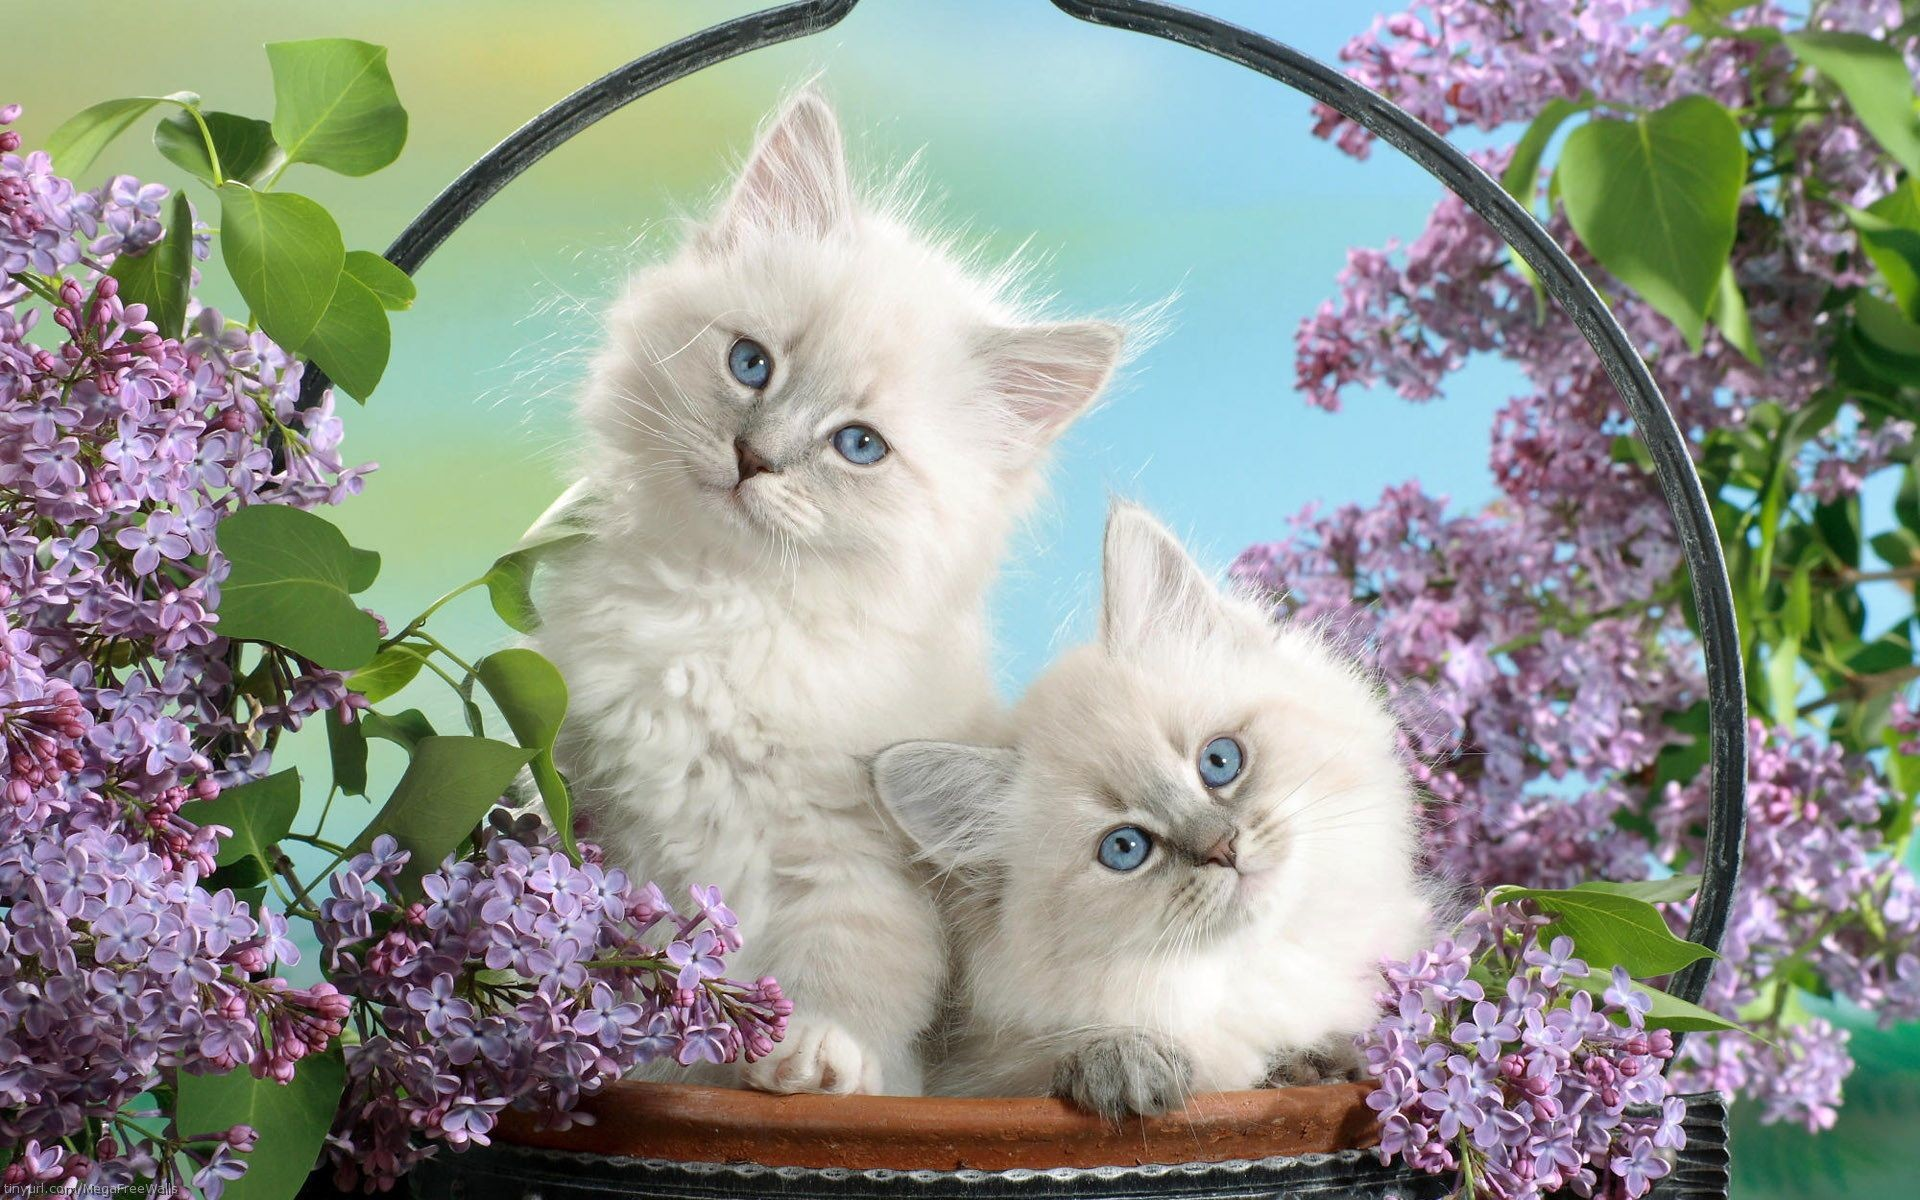 Cute kitty wallpapers 67 background pictures 1920x1080 kitten wallpapers background thecheapjerseys Gallery